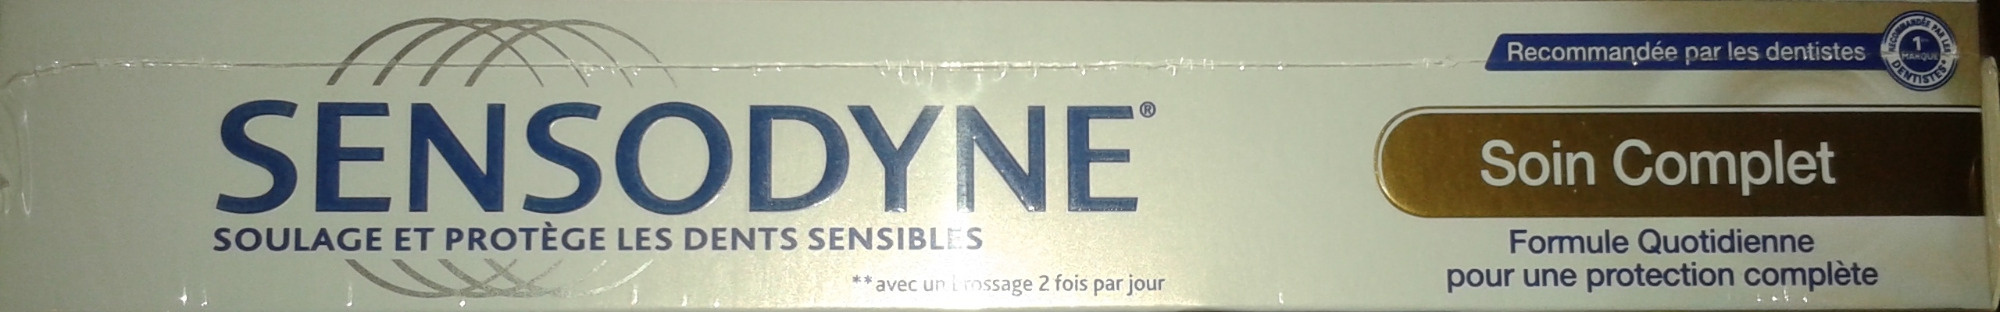 Sensodyne soin complet - Product